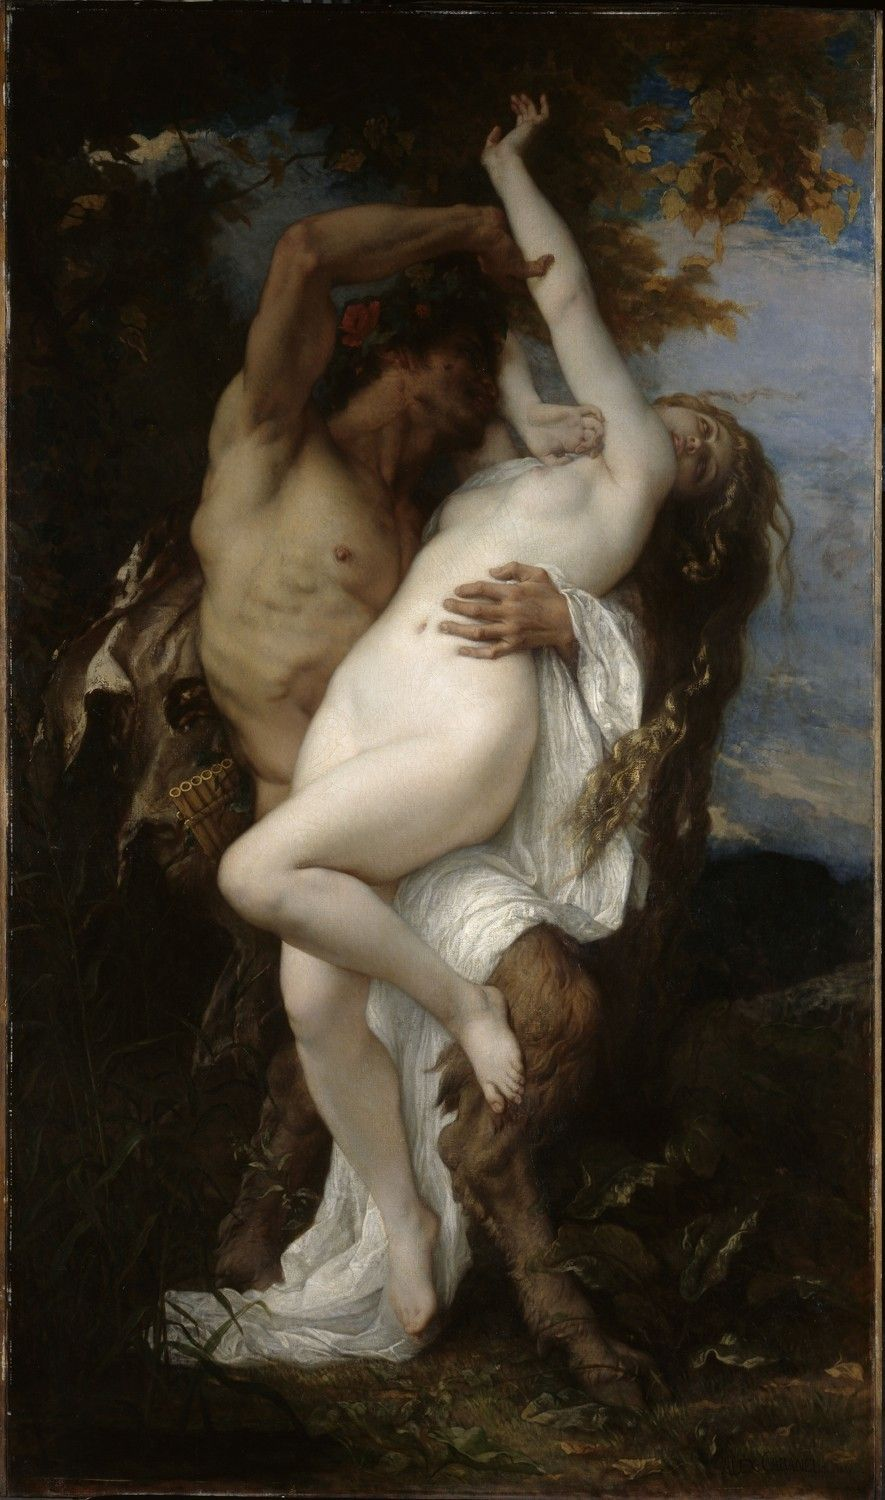 Nymph and Satyr -  Alexandre Cabanel (1860)